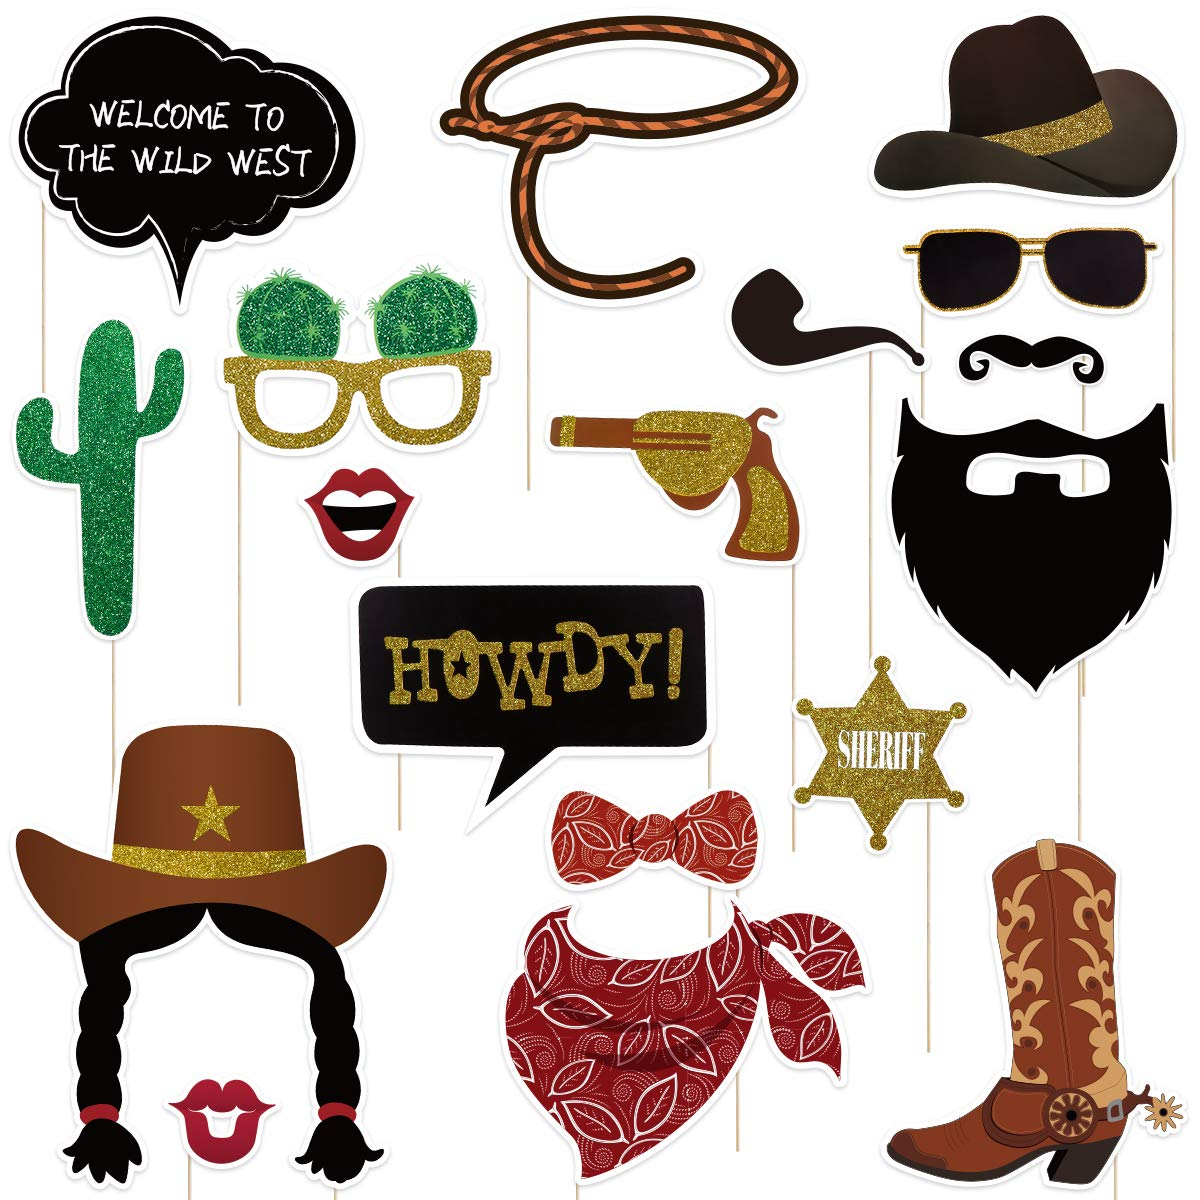 Amosfun West Cowboy Photo Booth Props Wild Western Cowboy Party Themed  Decoration 18pcs.